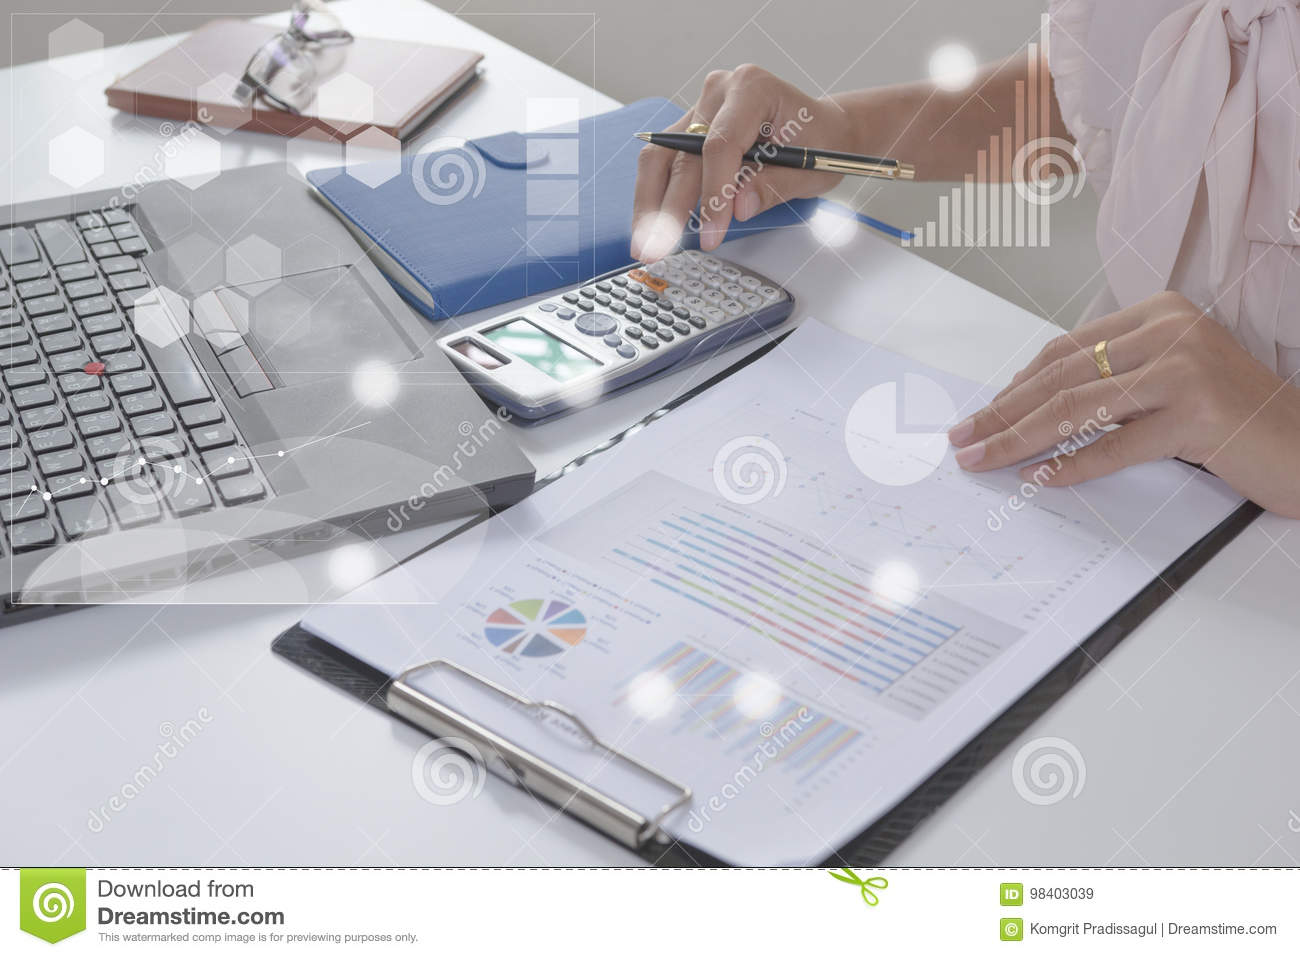 Young finance market analyst working at office on laptop while sitting at white table.Businessman analyze document